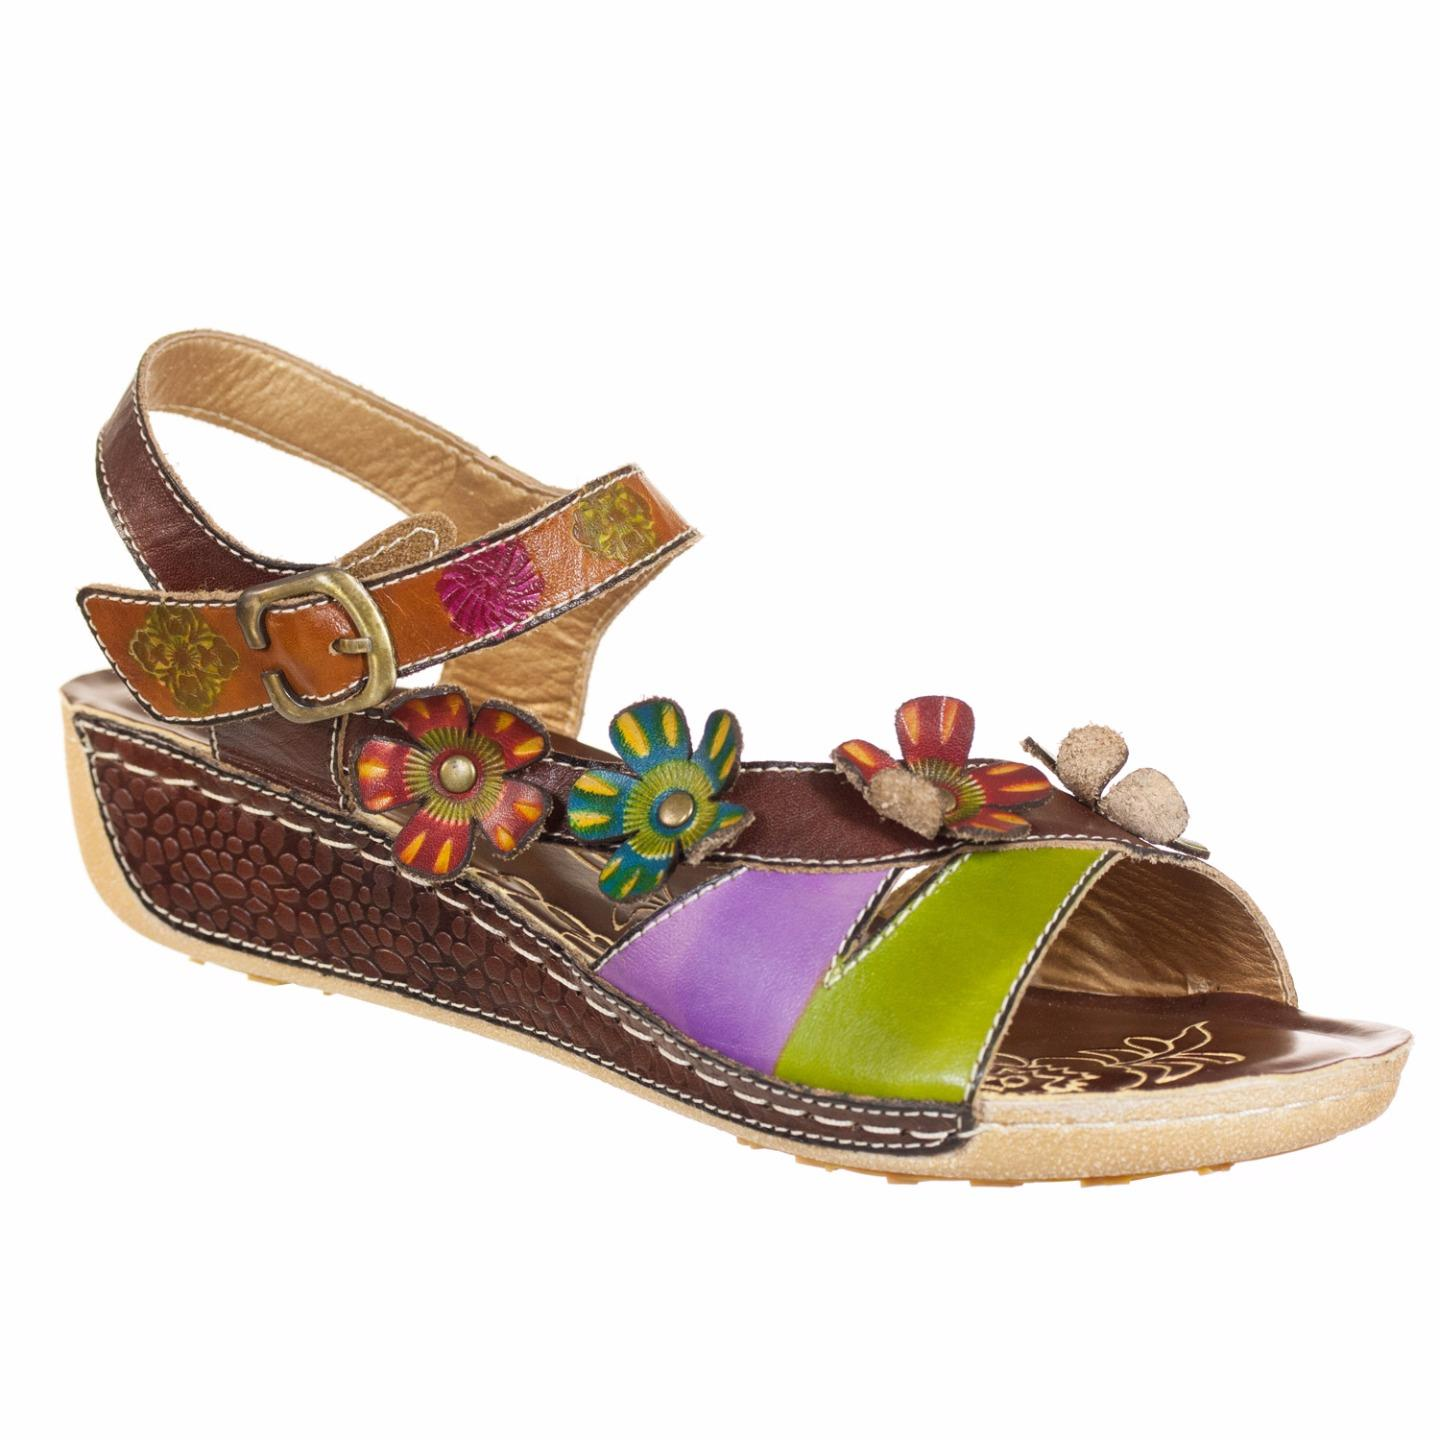 Belladona Spring Step L'Artiste Collection Women's Sandal Brown Multi EU 37 US 7 by Spring Step